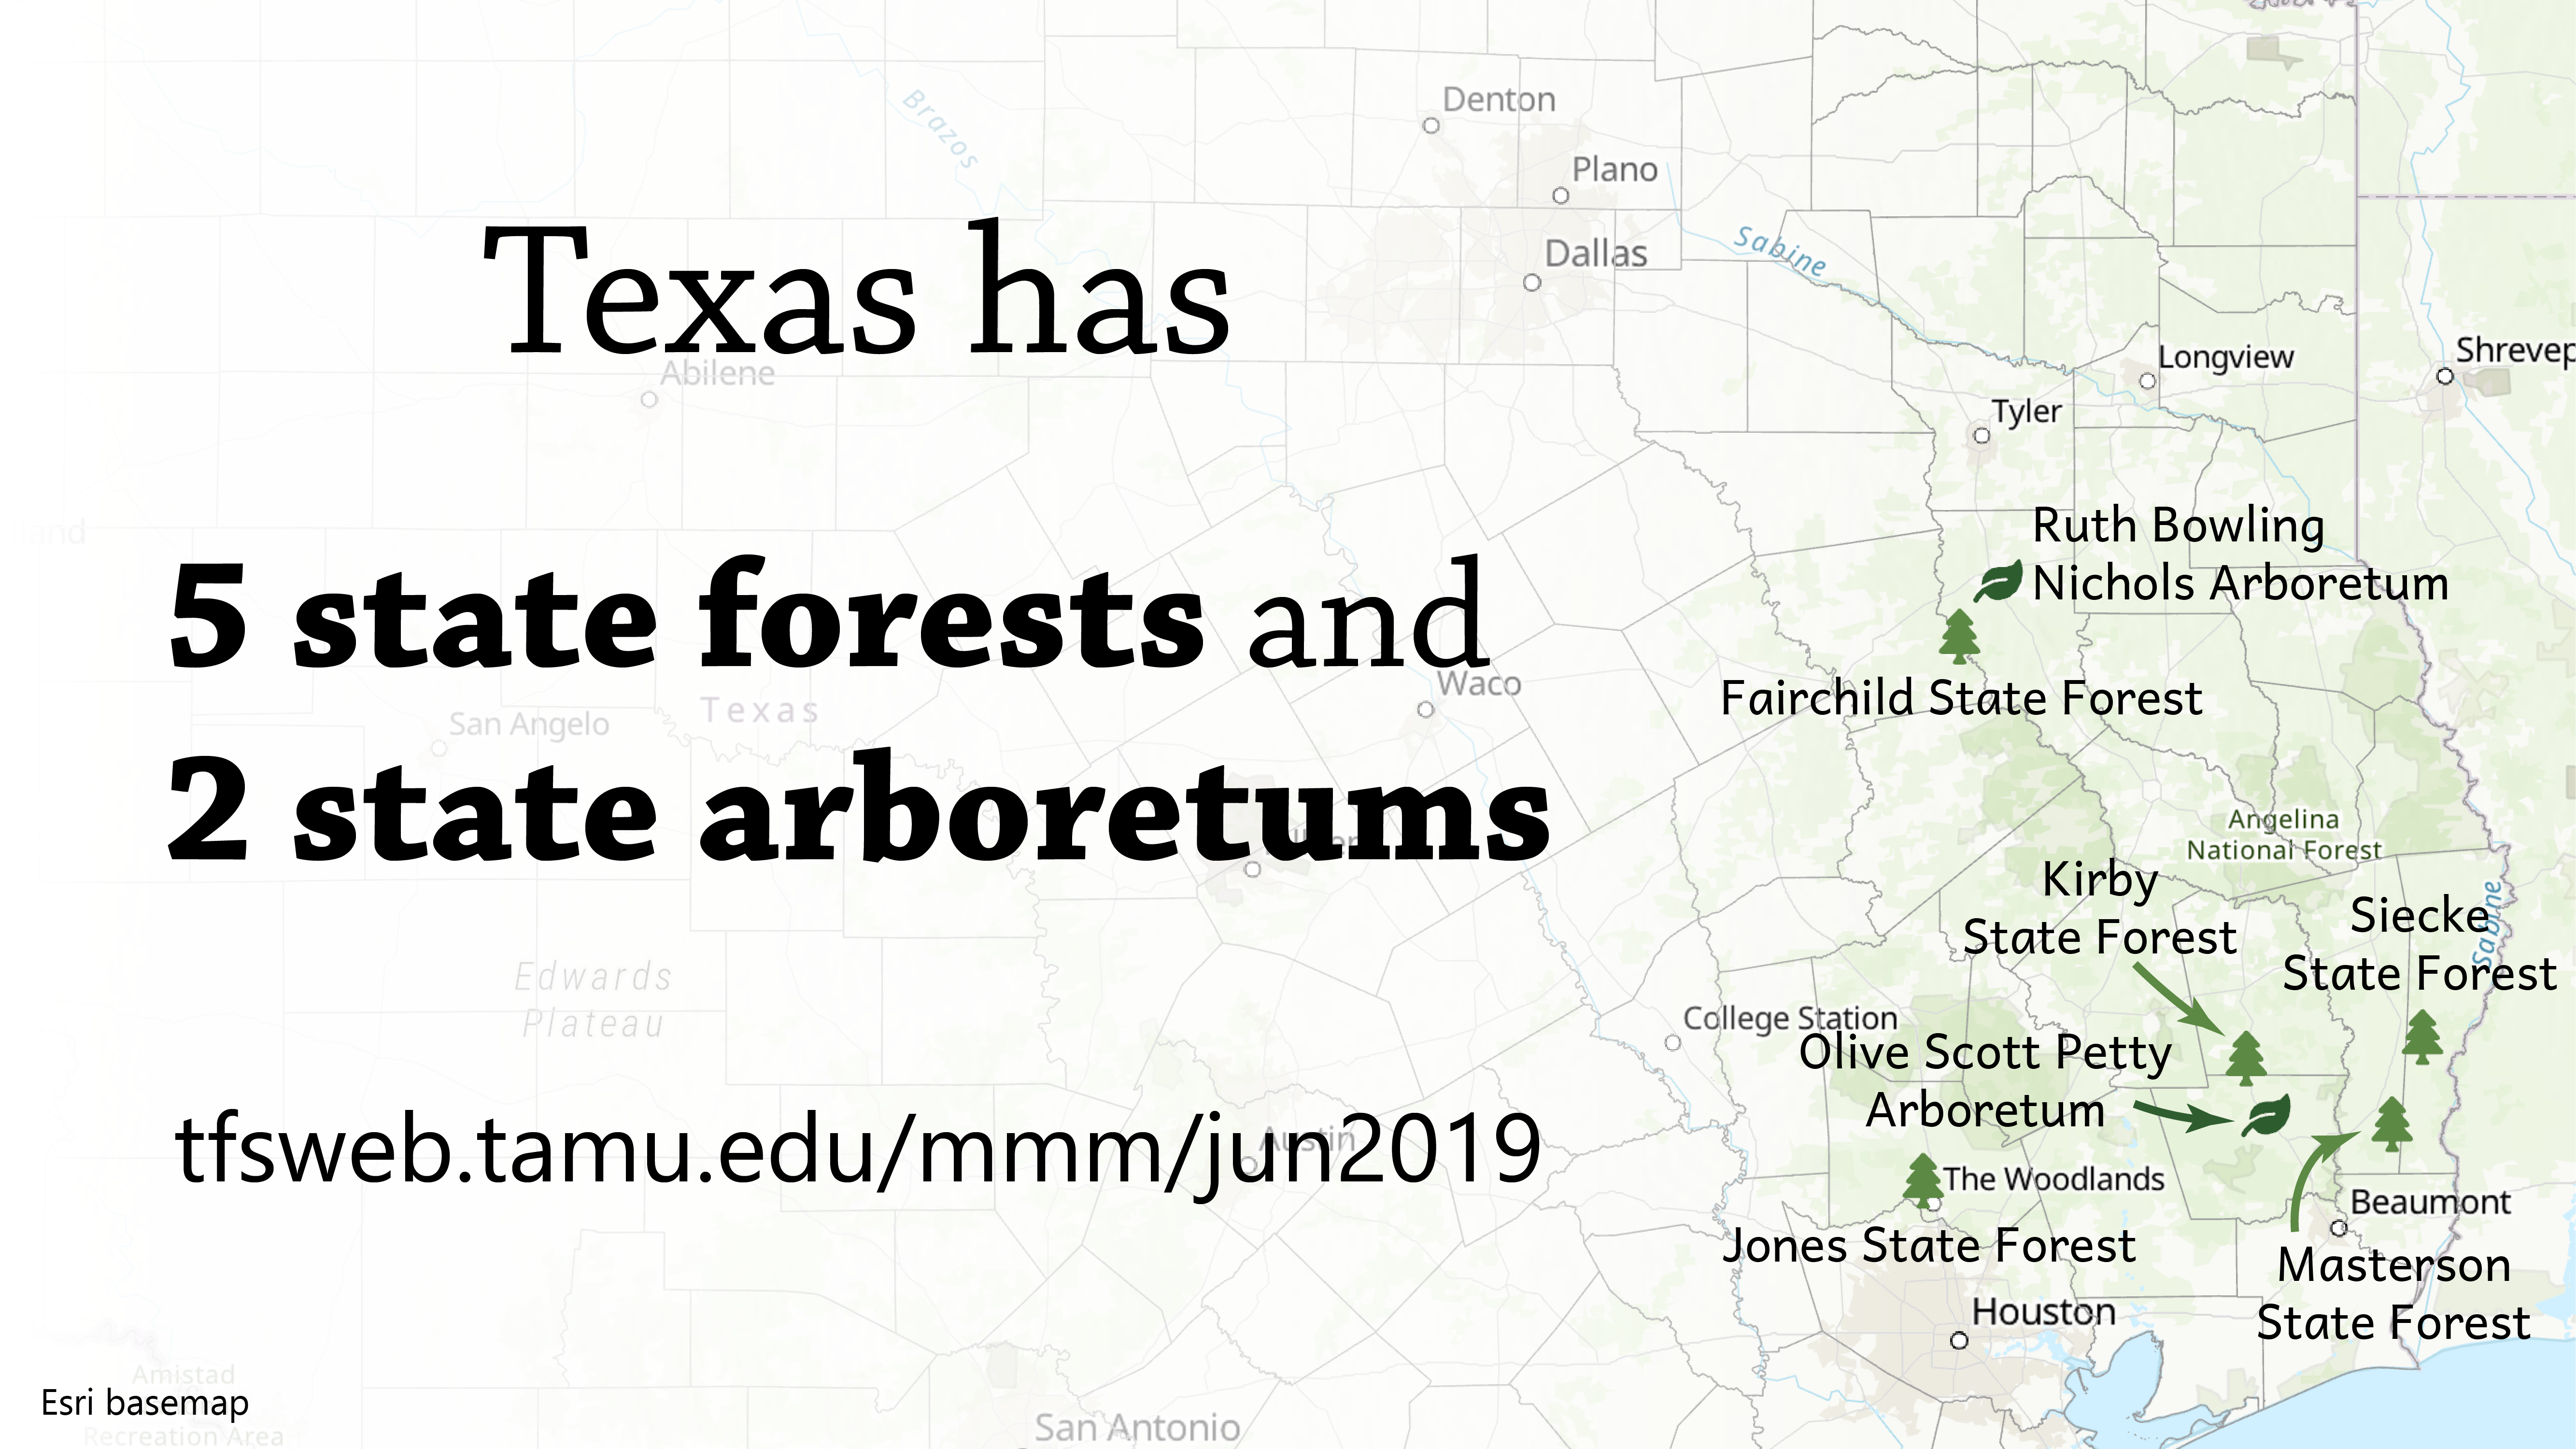 Texas State Forests and Arboretums